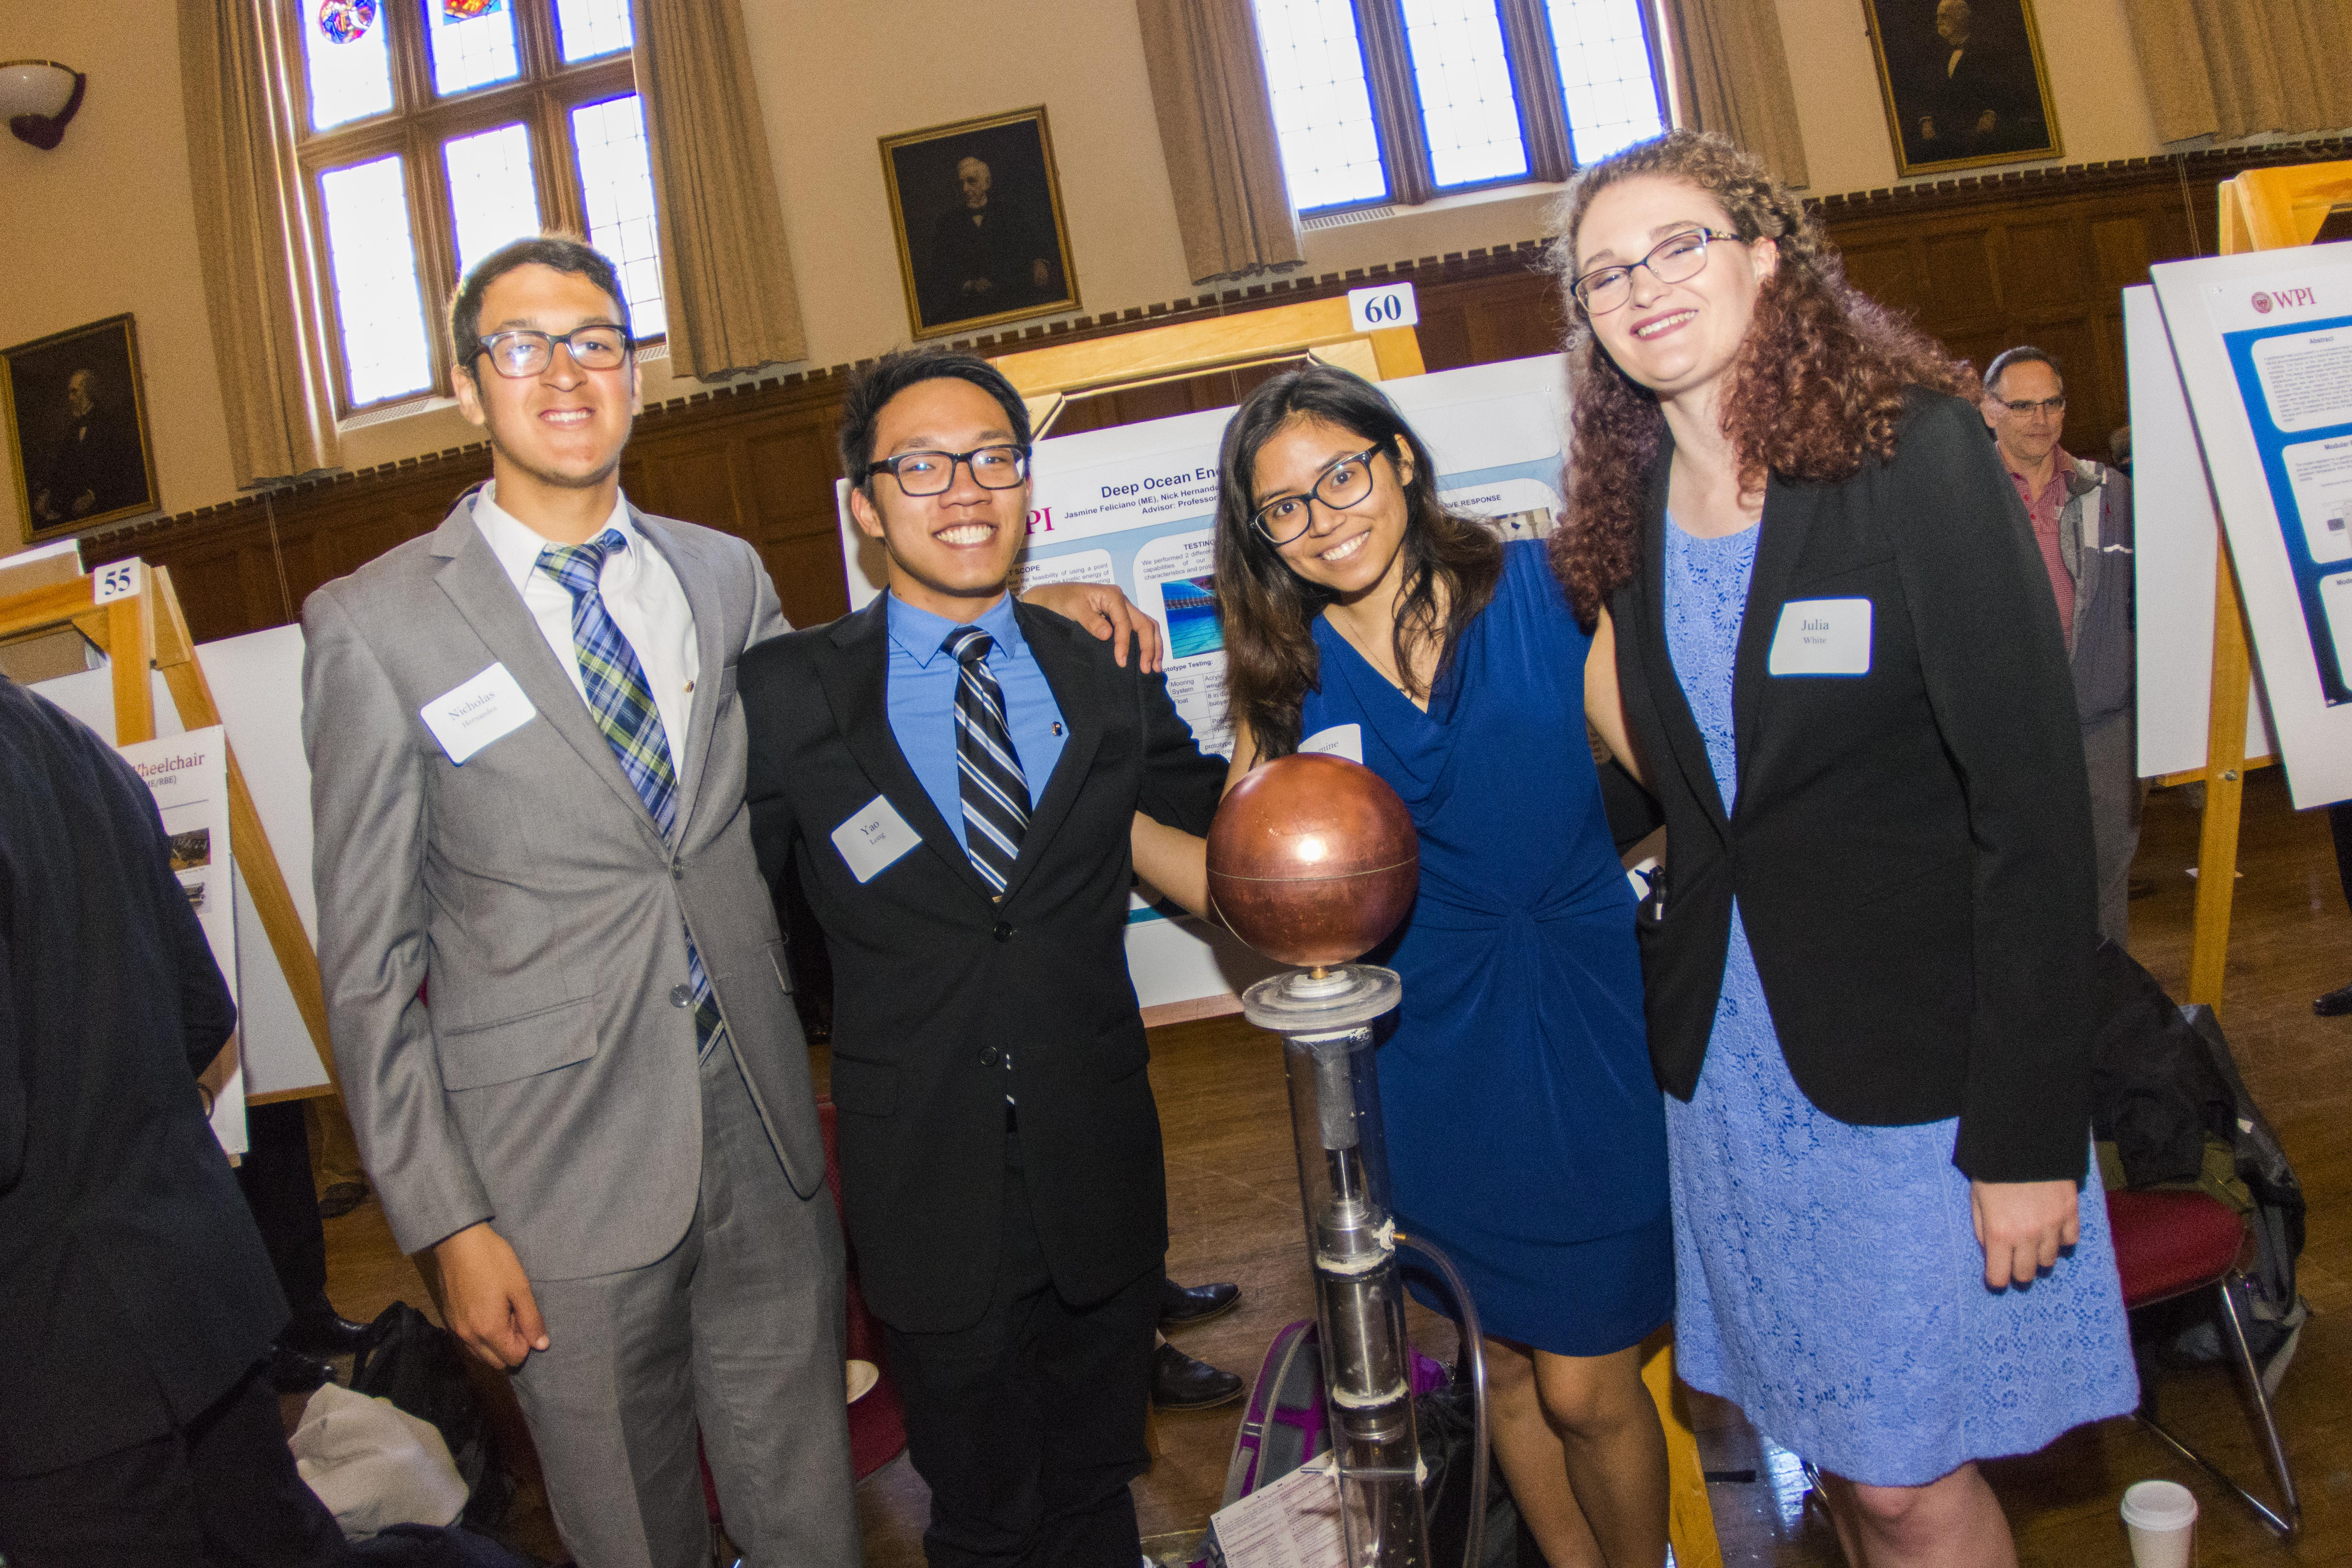 Four students stand in front of their MQP, a deep ocean energy harvester. They're dressed in business outfits, and are all smiling.